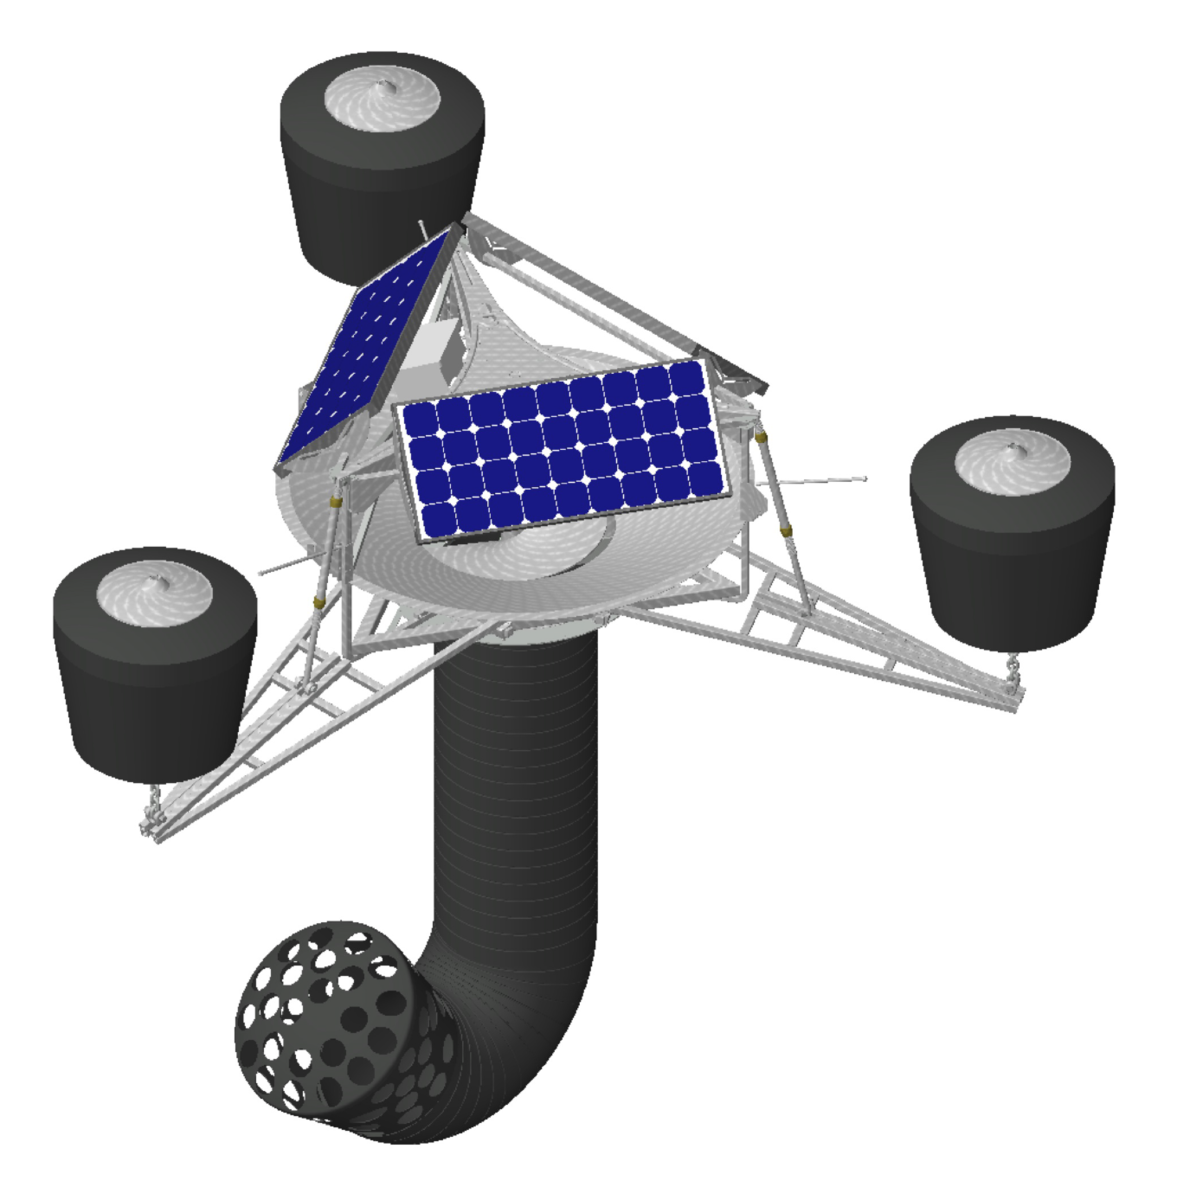 drawn image depicting a SolarBee SB7500LH Hypolimnetic Lake Circulator